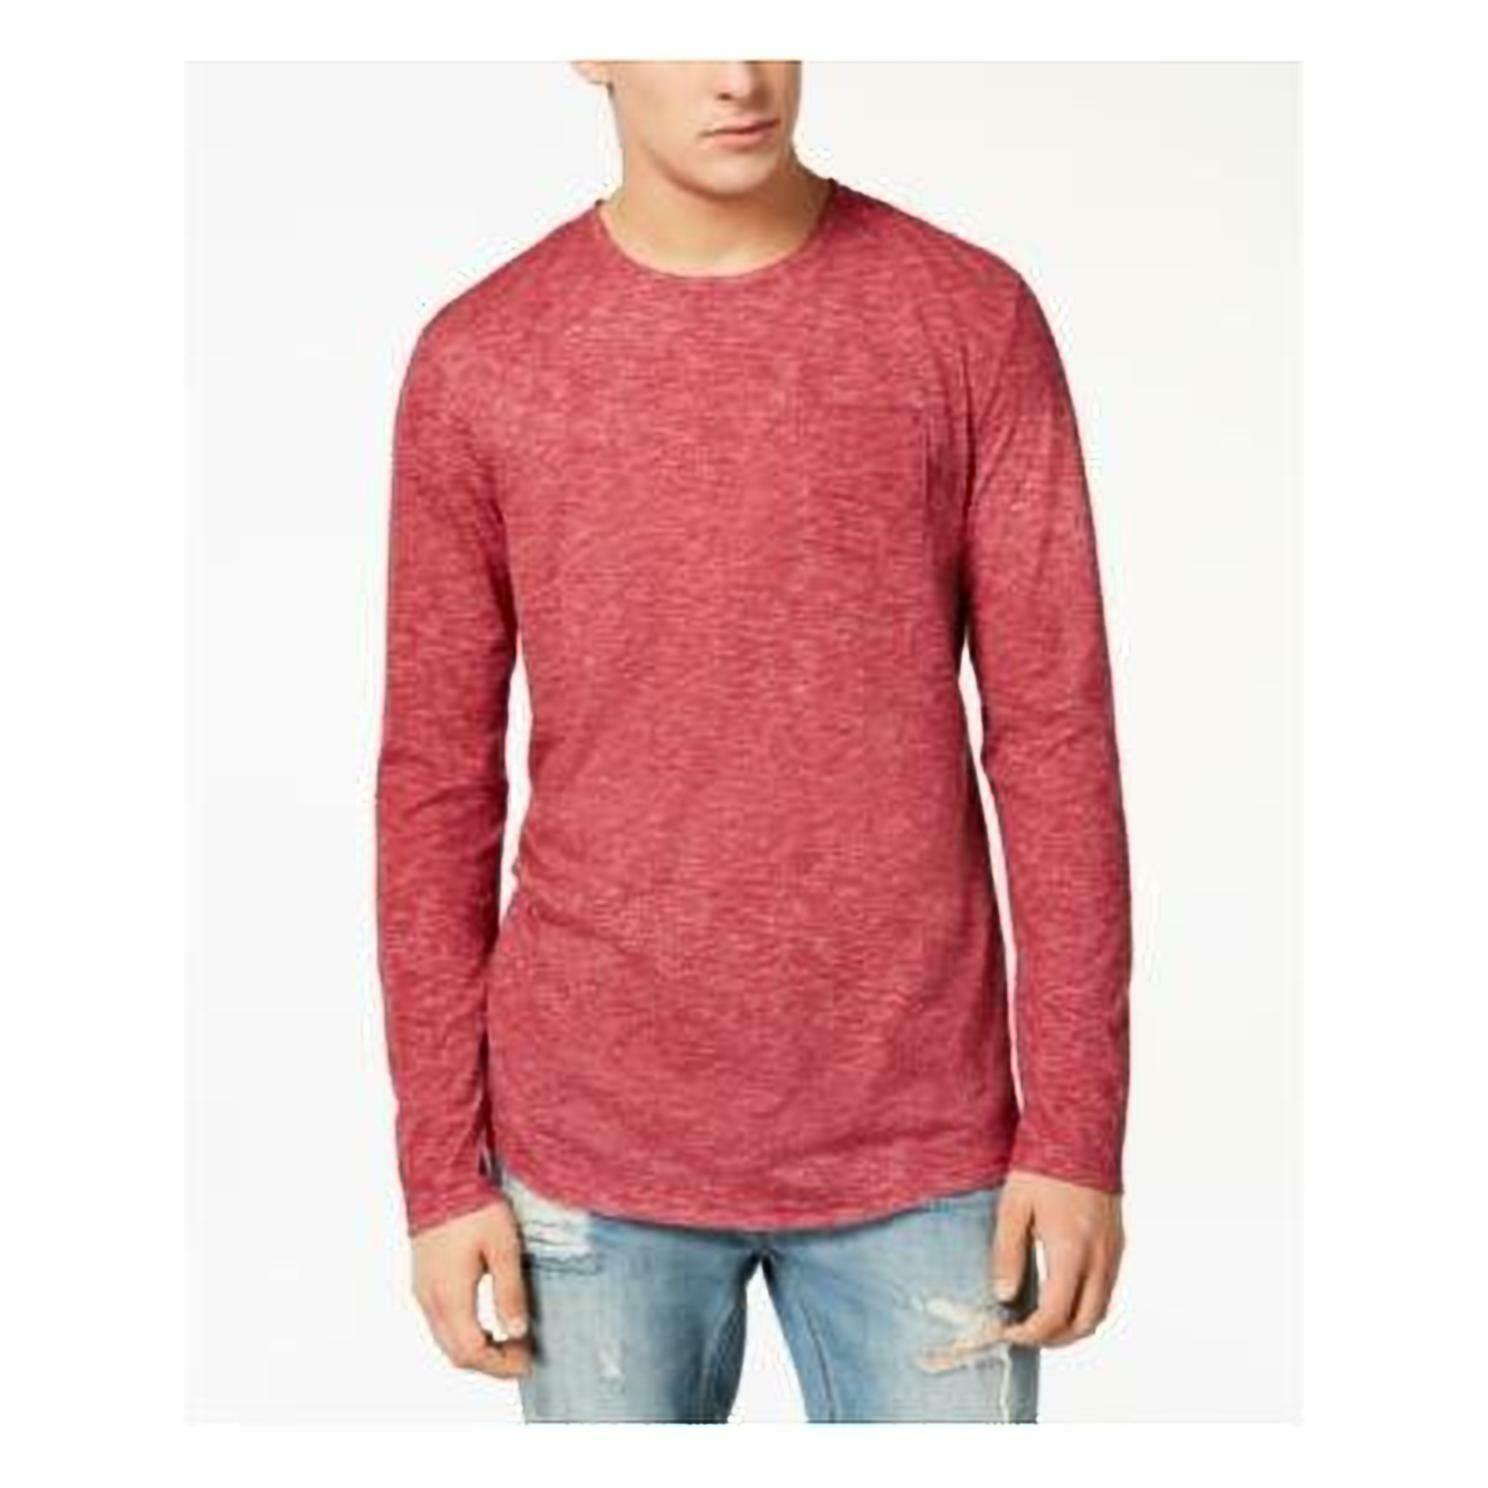 American Rag Men's Crew Neck Basic T-shirt Red Pick your size #678